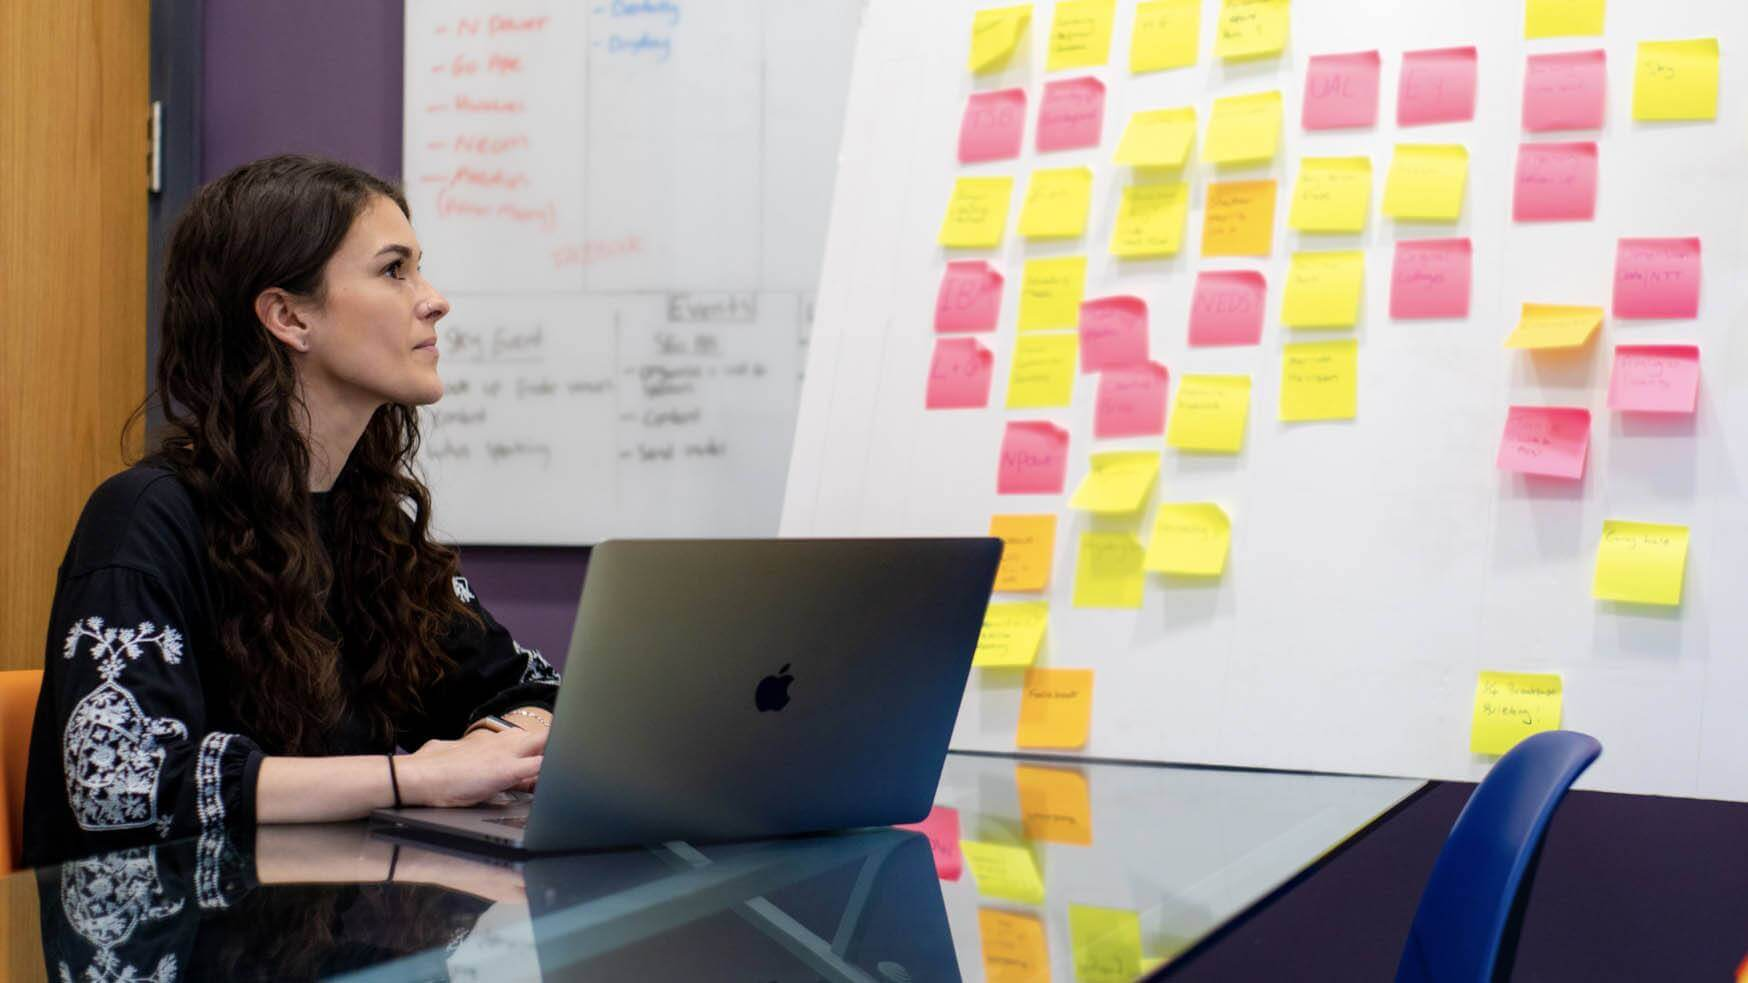 Agency worker on laptop with post-it-notes